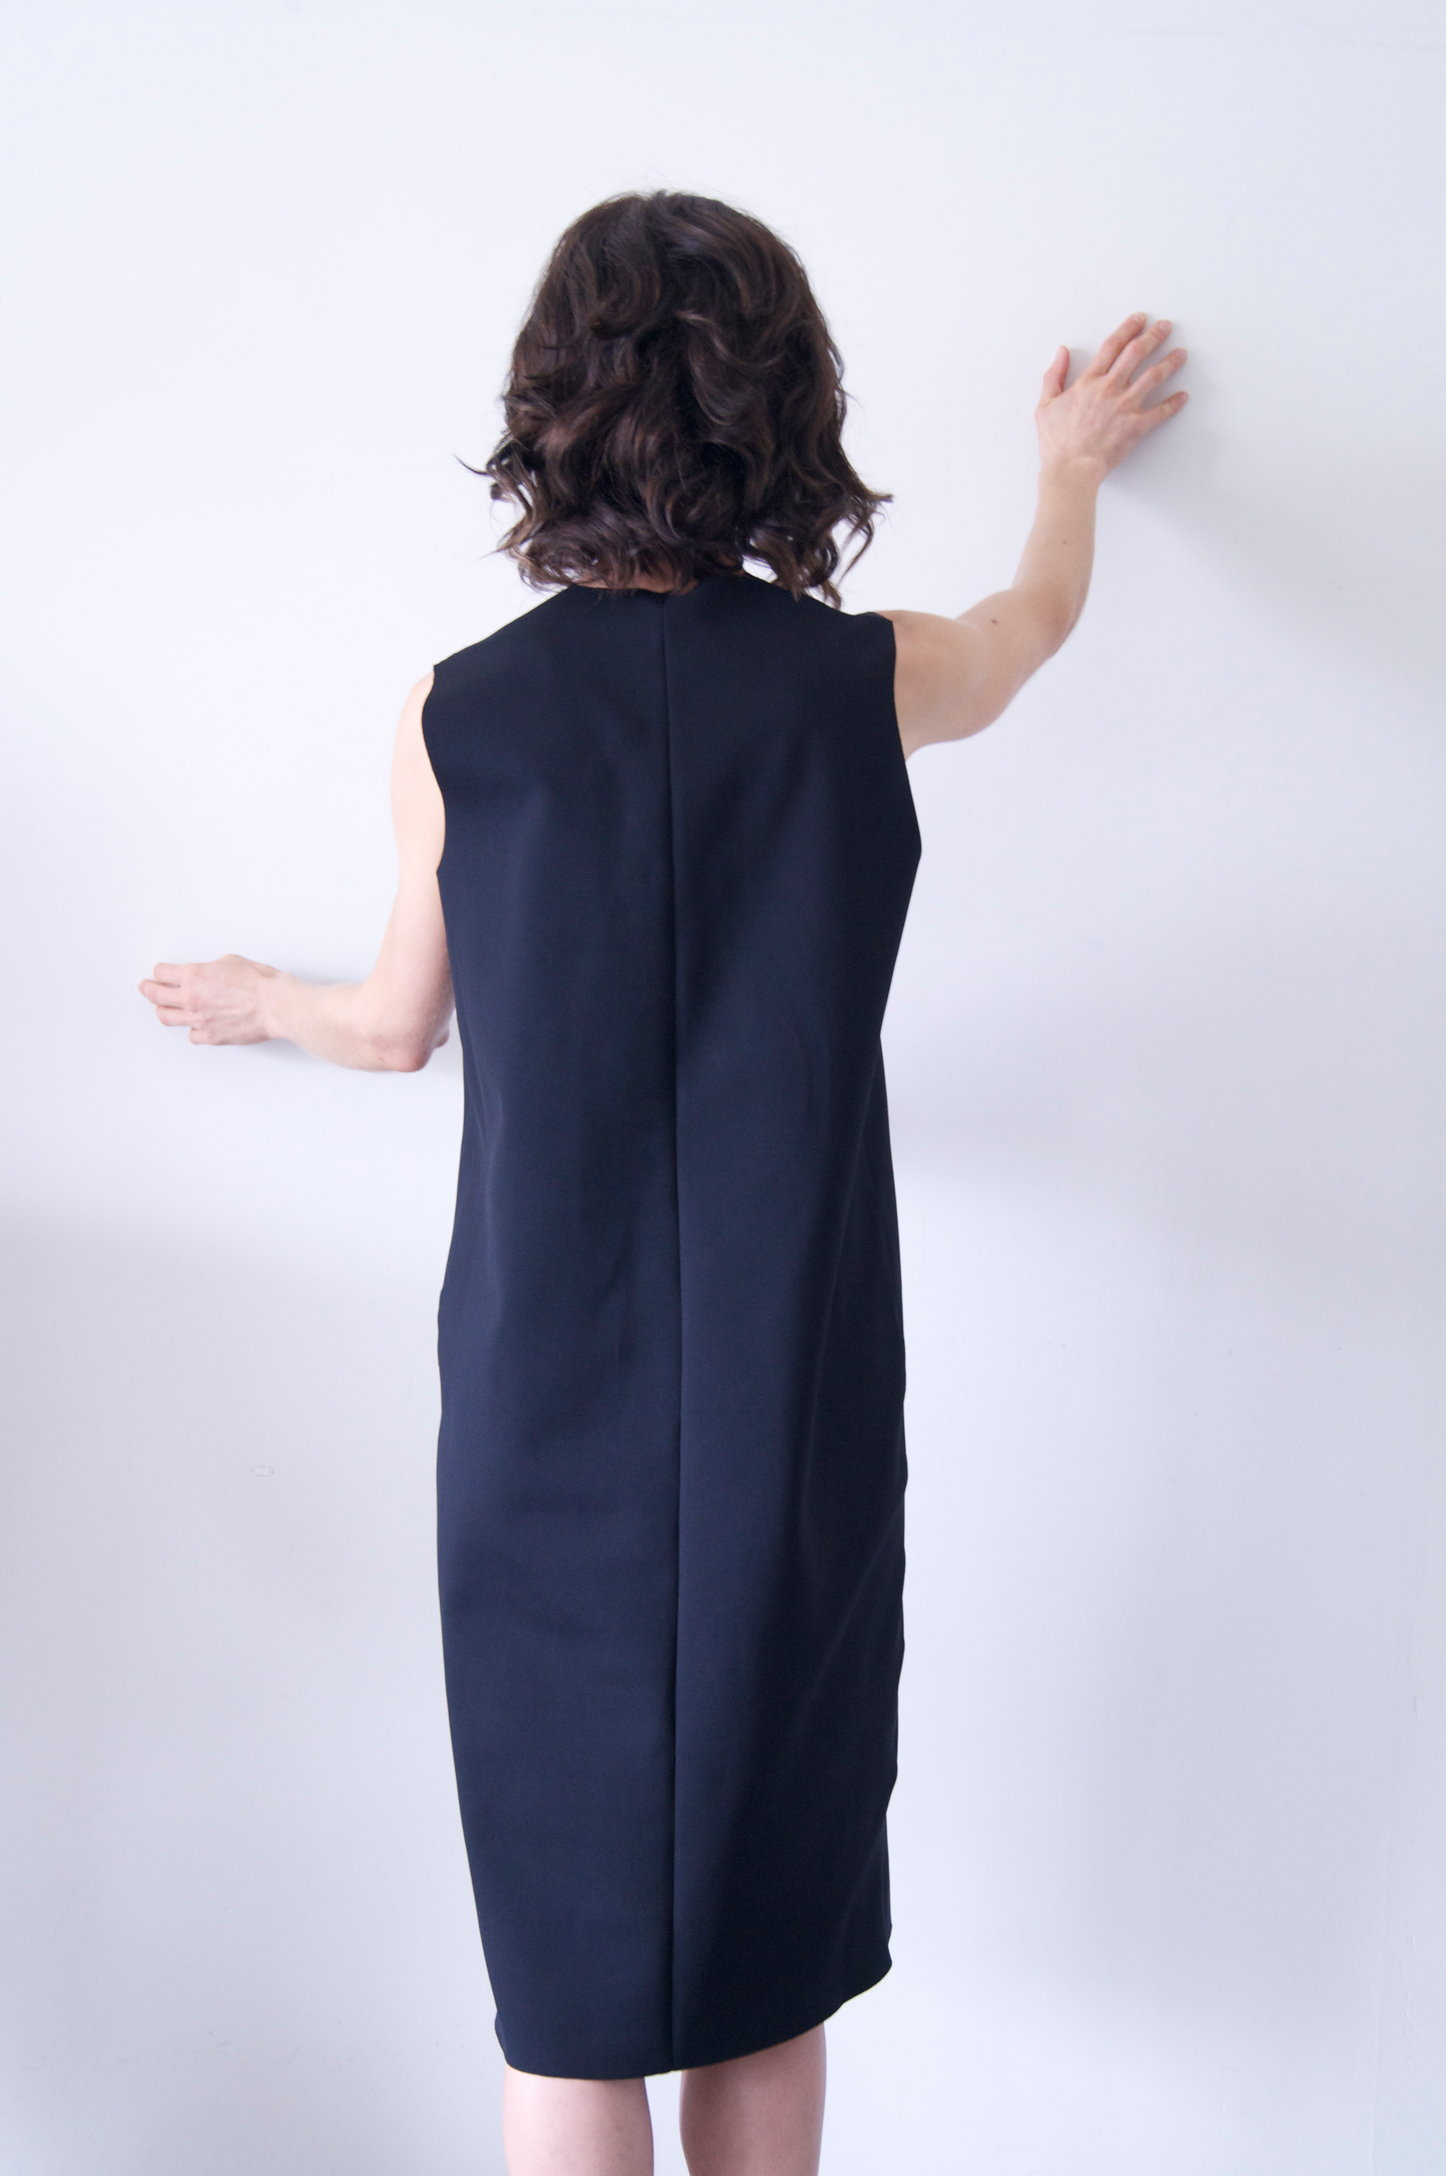 totti dress in black neoprene   550.00